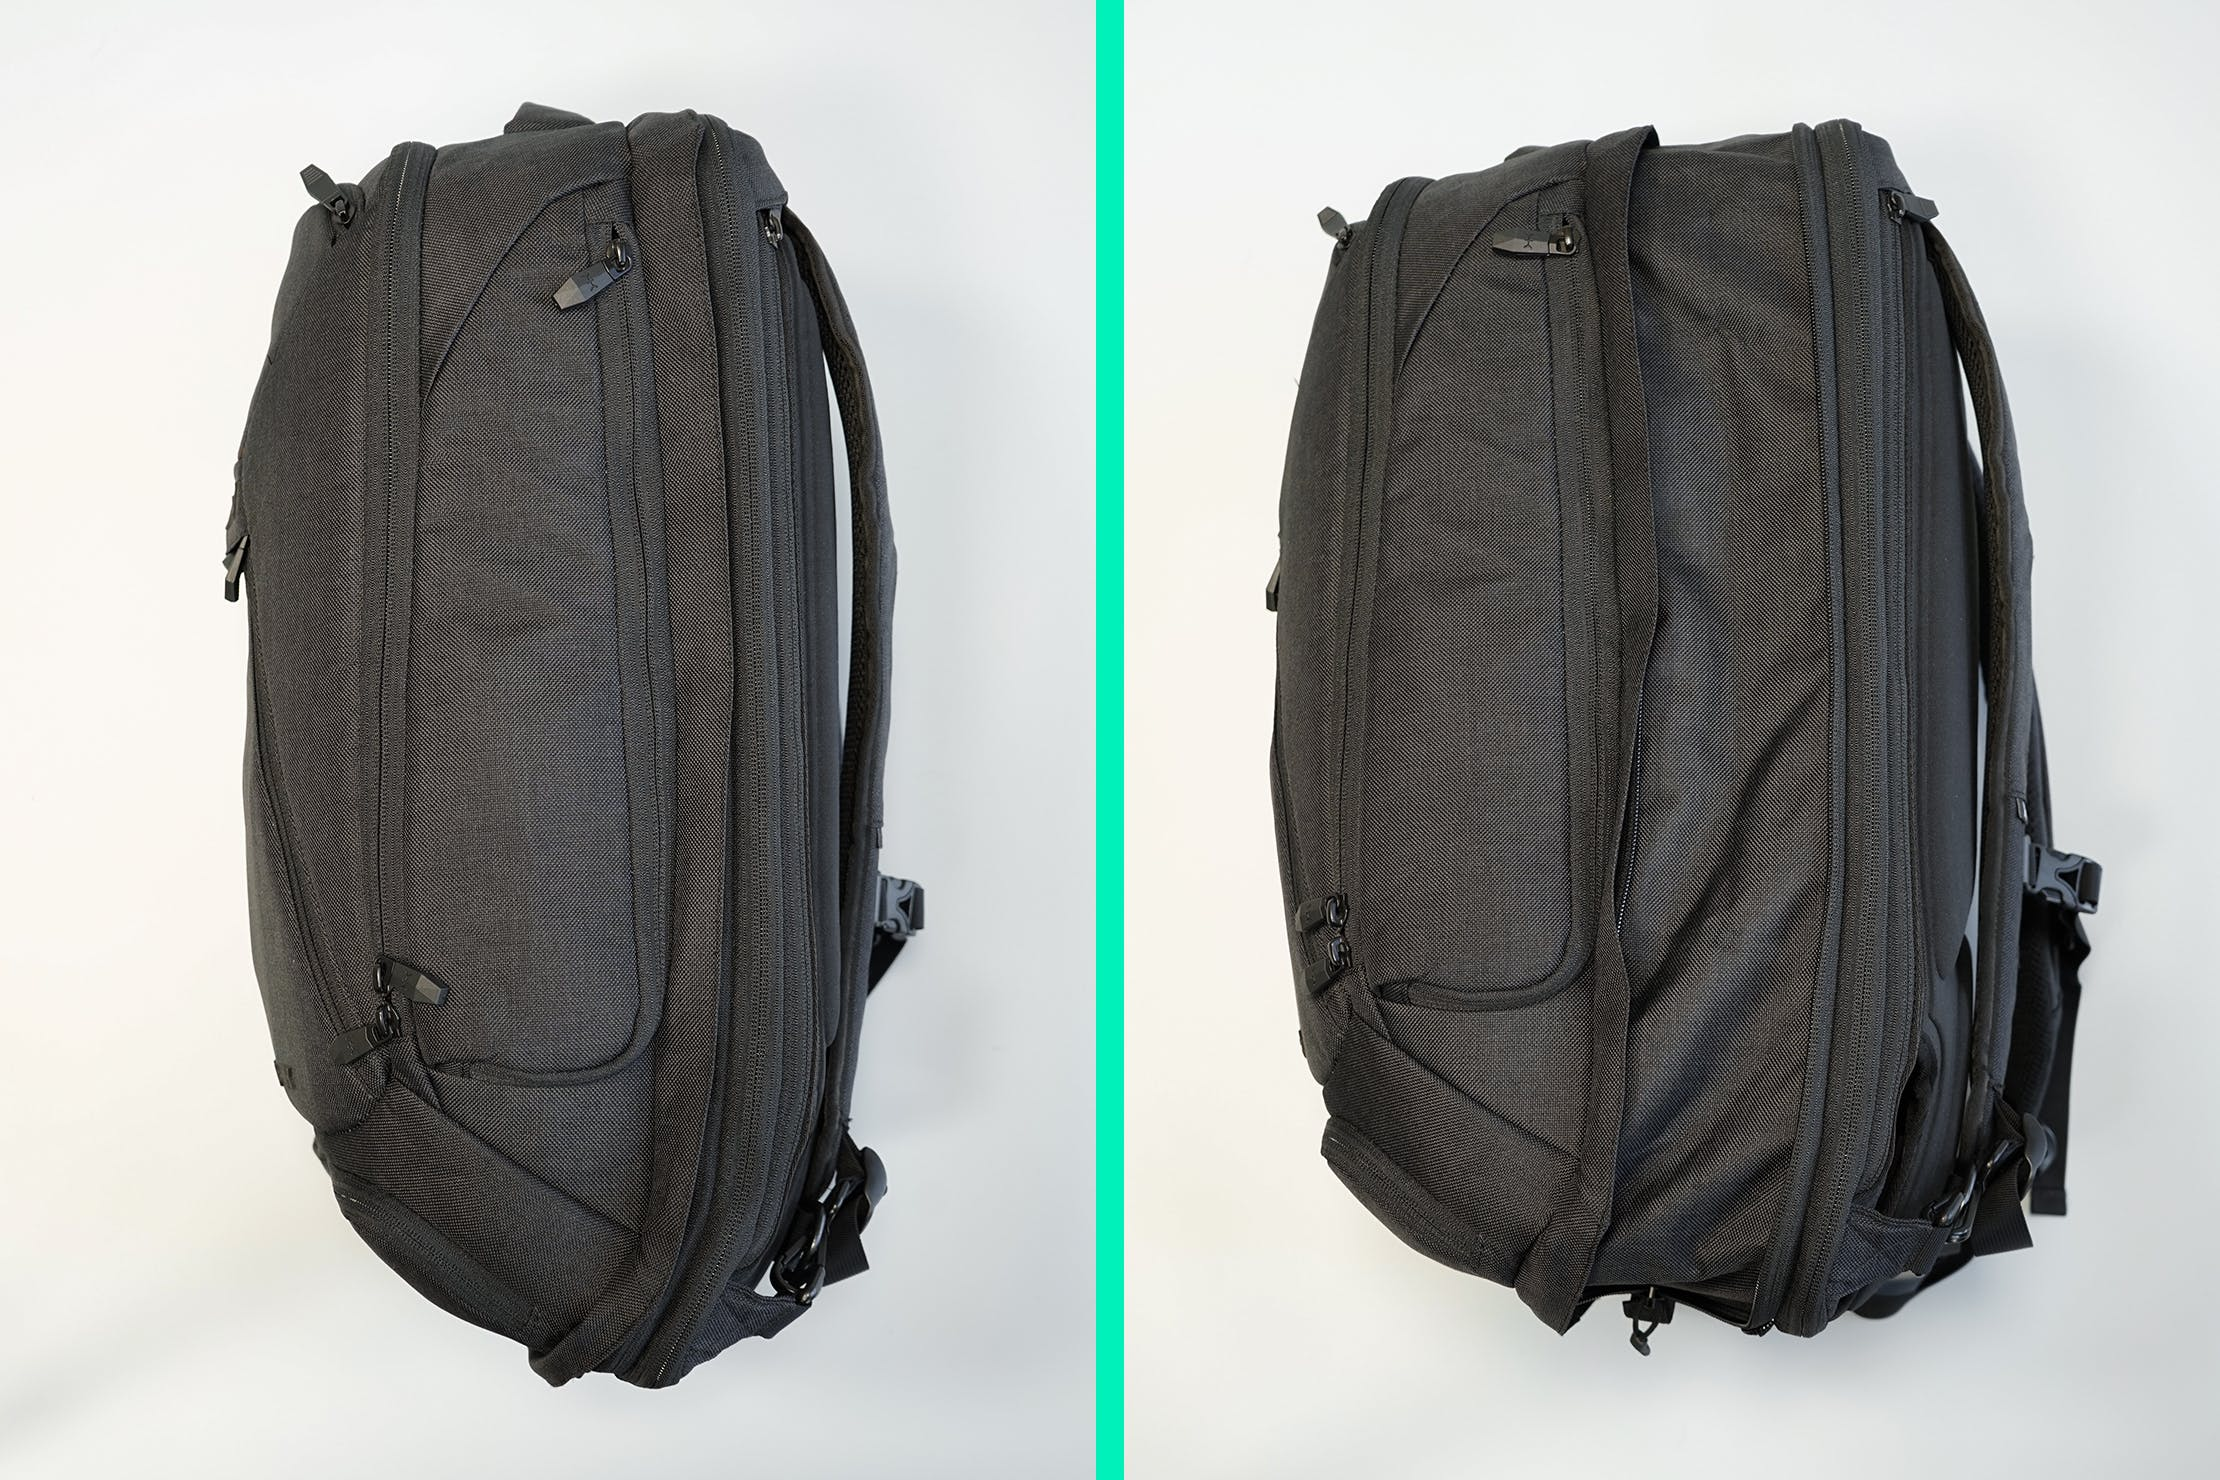 Knack Large Expandable Pack Compressed (Left) Expanded (Right)